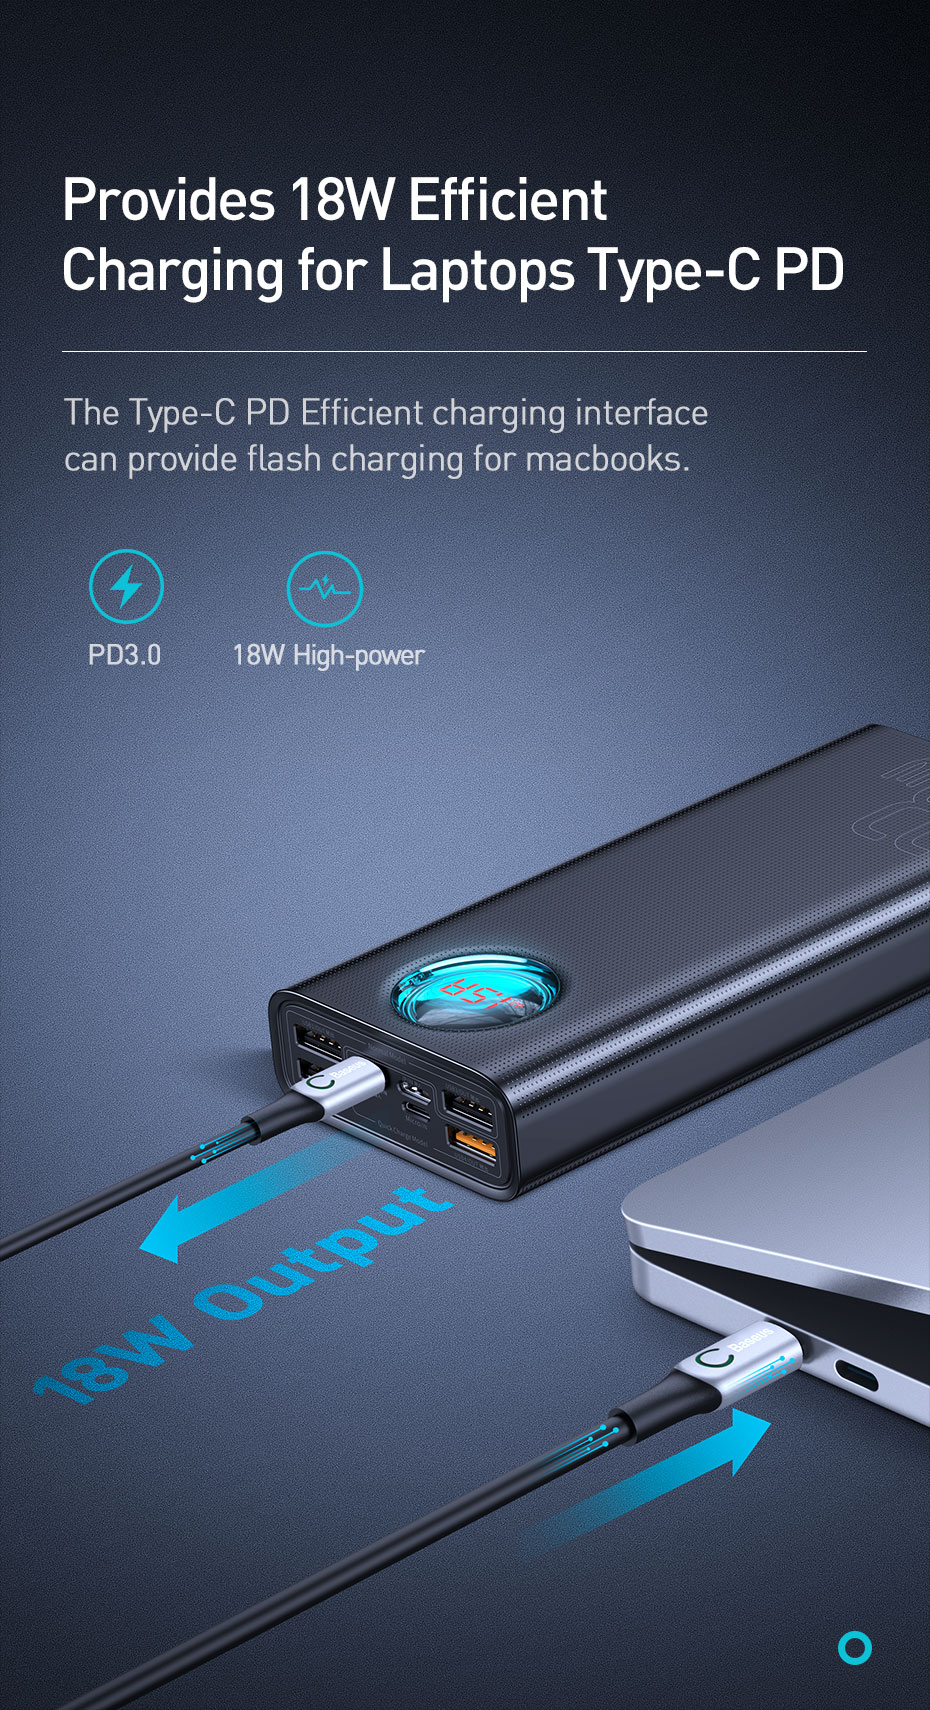 Baseus 30000mAh Power Bank USB C PD 3.0 Fast Charging + Quick Charge 3.0 Portable External Battery for Samsung Laptop Powerbank 10